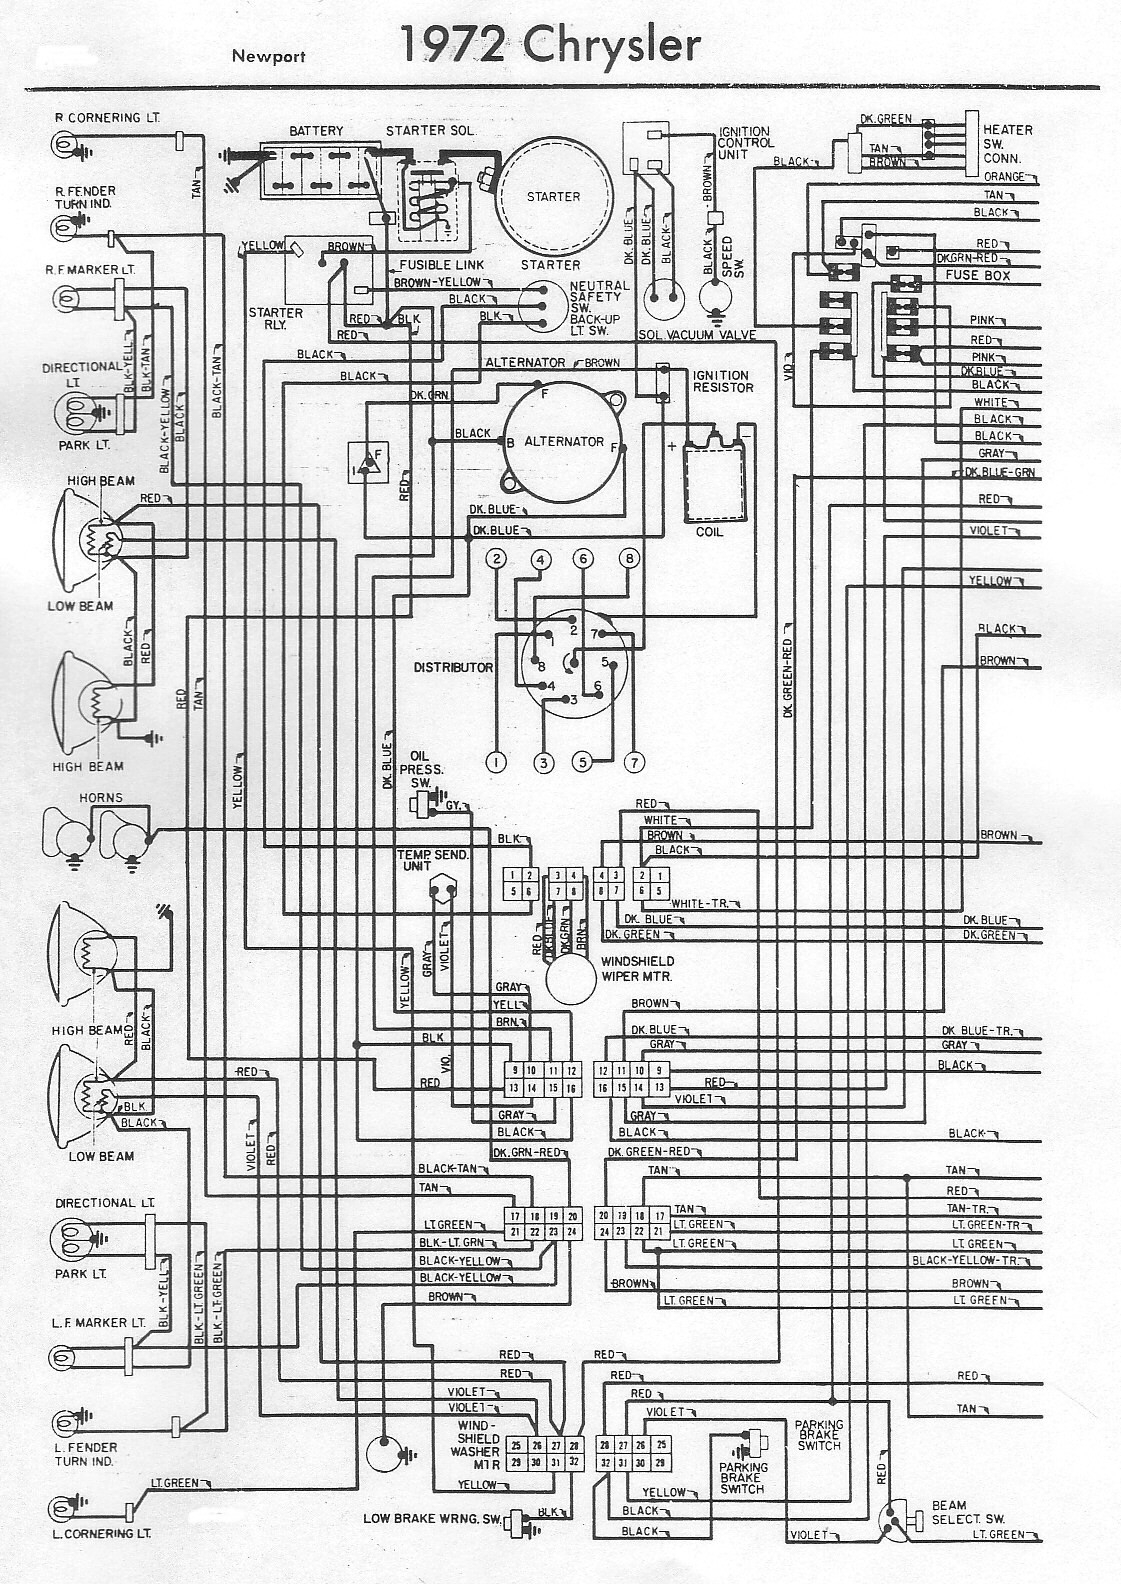 wiring diagram 1973 chrysler imperial wiring diagram library 1971 Chrysler New Yorker 2 bp blogspot com 5gqd imewvm tpzxpkog_pi aaaaaaawiring diagram 1973 chrysler imperial 7